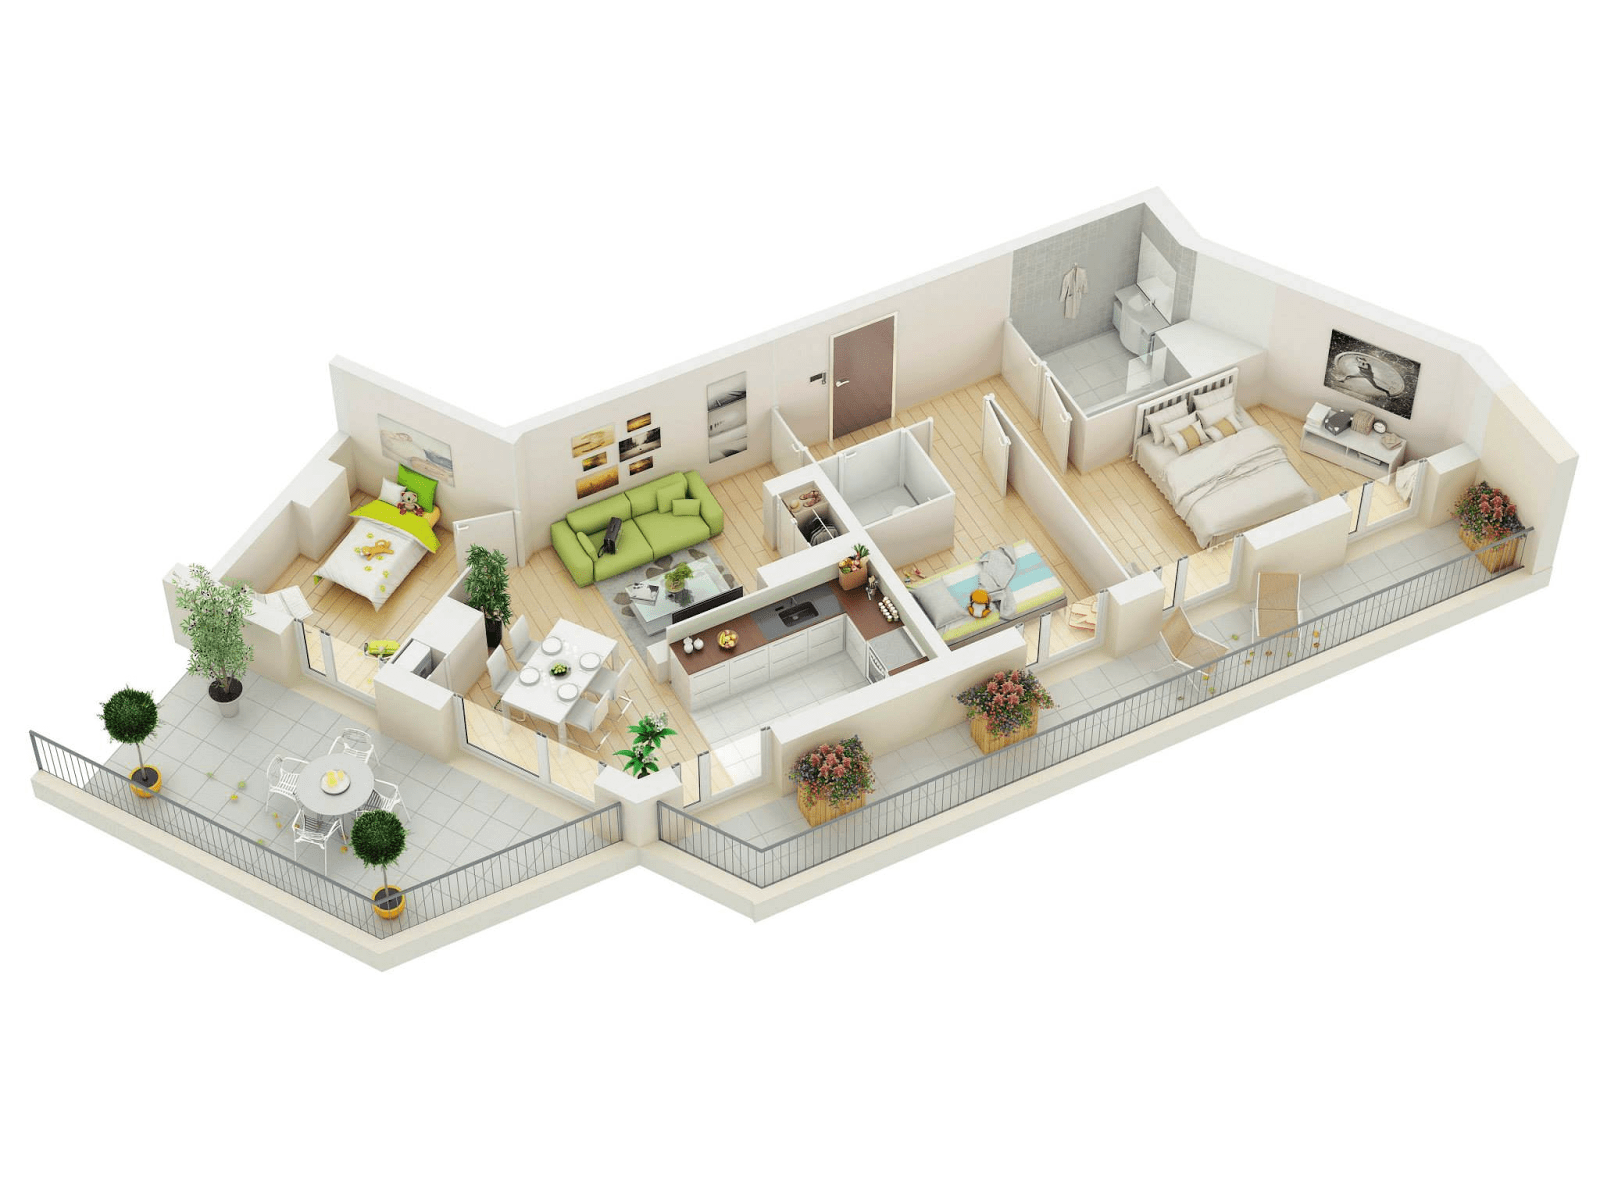 3d Layout Apartment Floor Plans With 3 Bedroom And 2 Bathroom (Image 4 of 11)